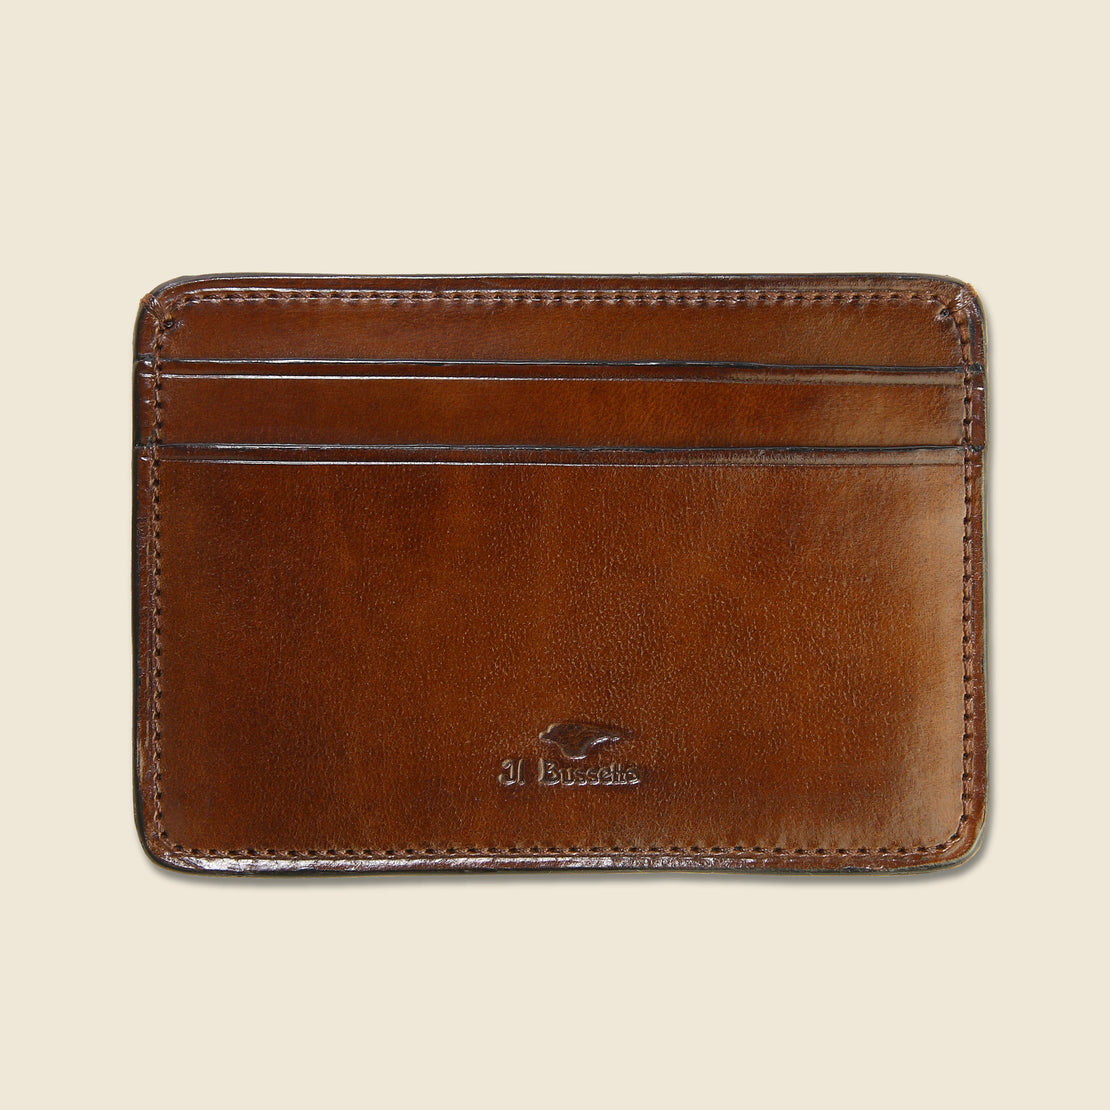 Il Bussetto Credit Card Case - Dark Brown